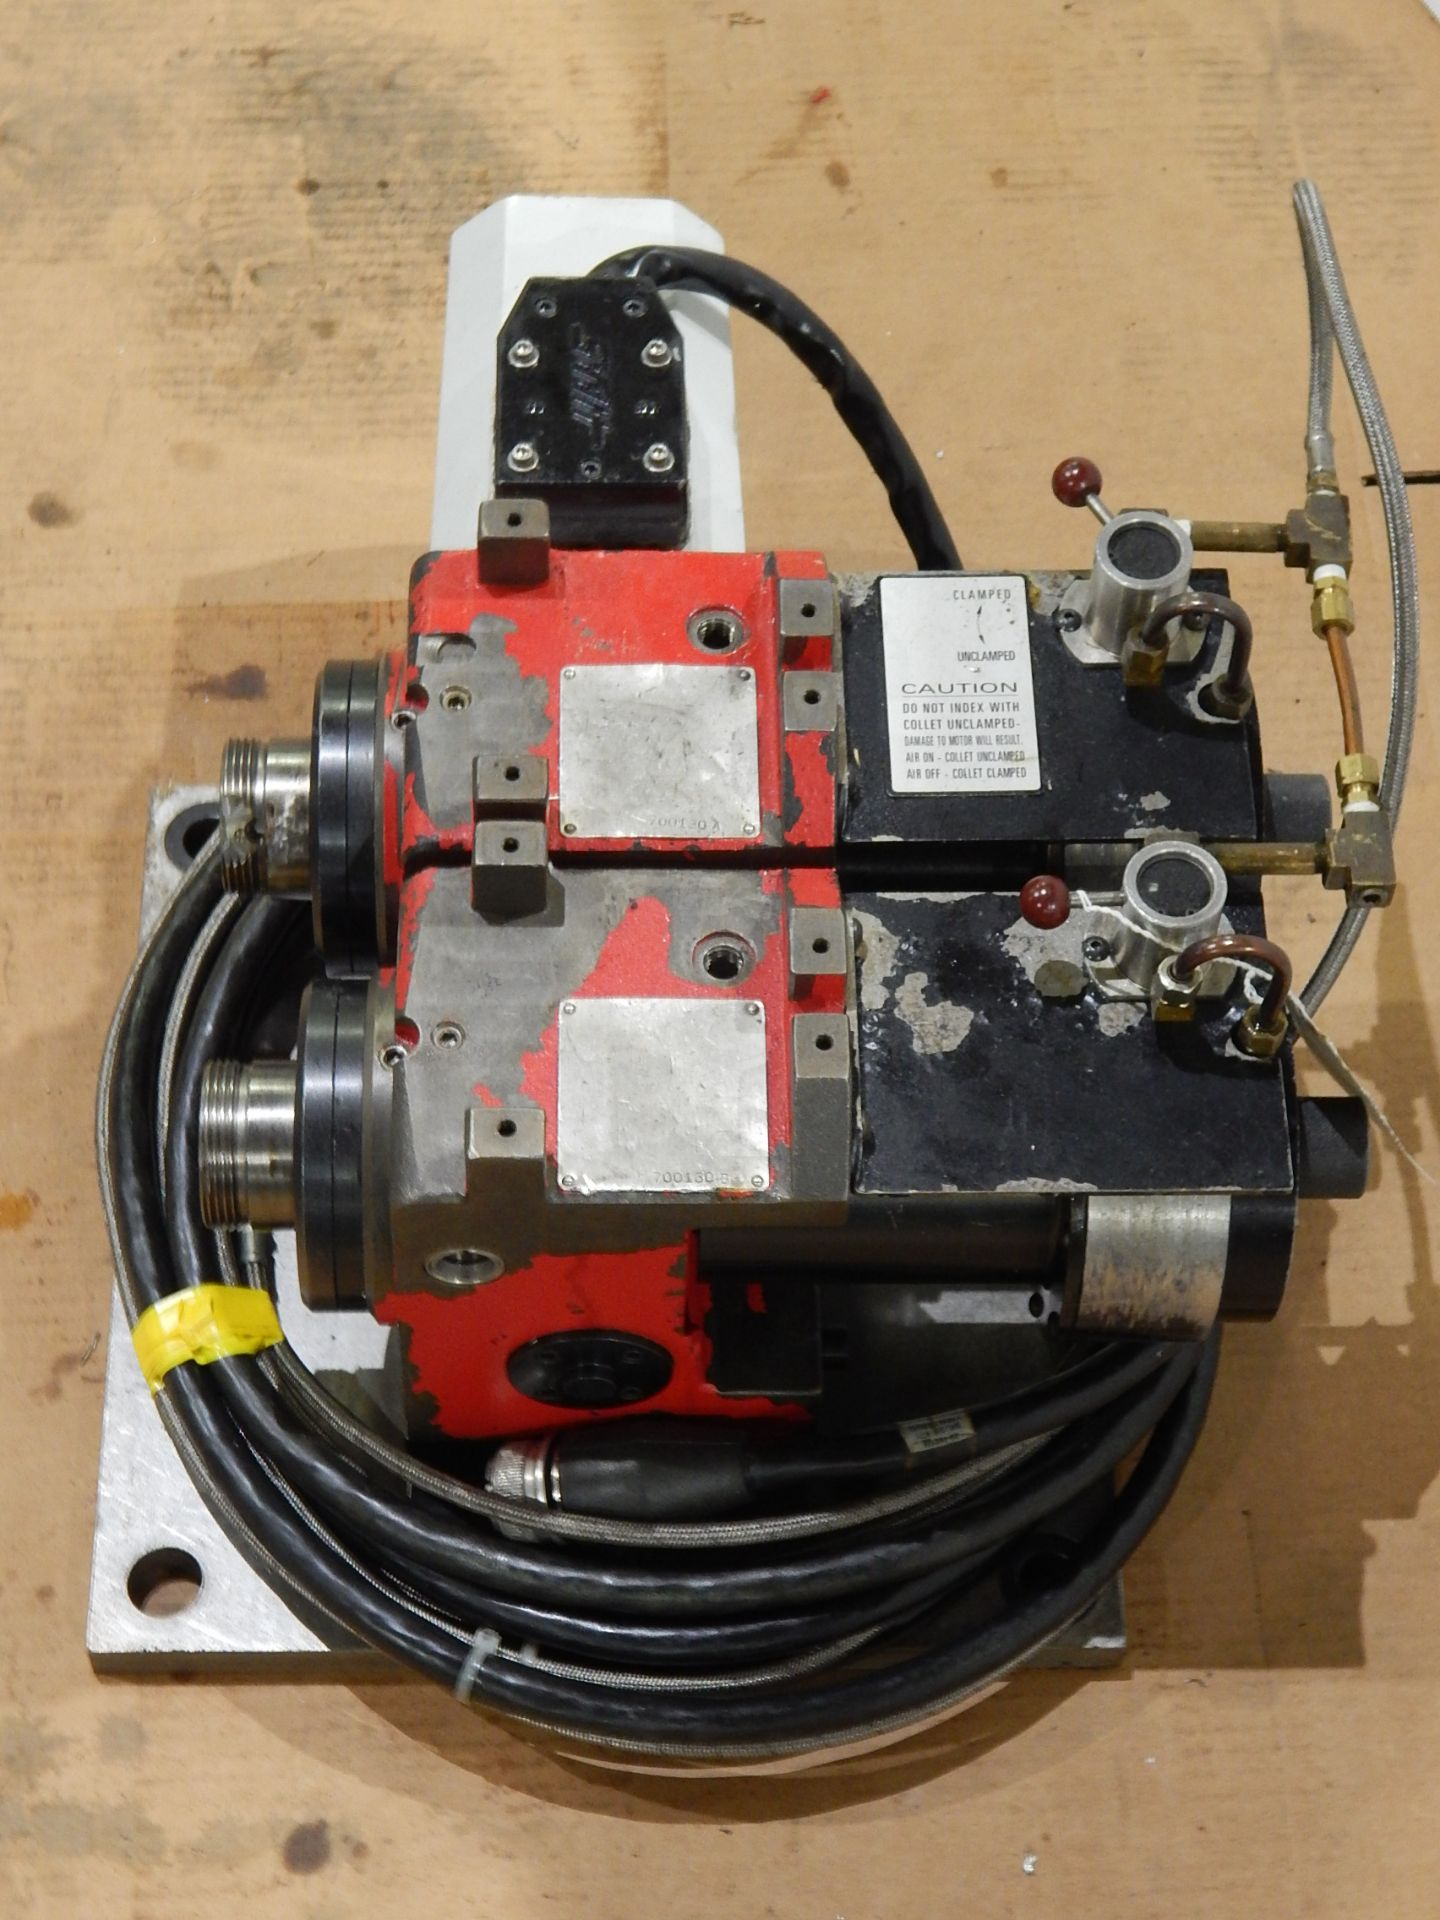 Haas HA5C-2 CNC Indexer, s/n 700130B, (2) 5C Programmable Spindles - Image 6 of 6